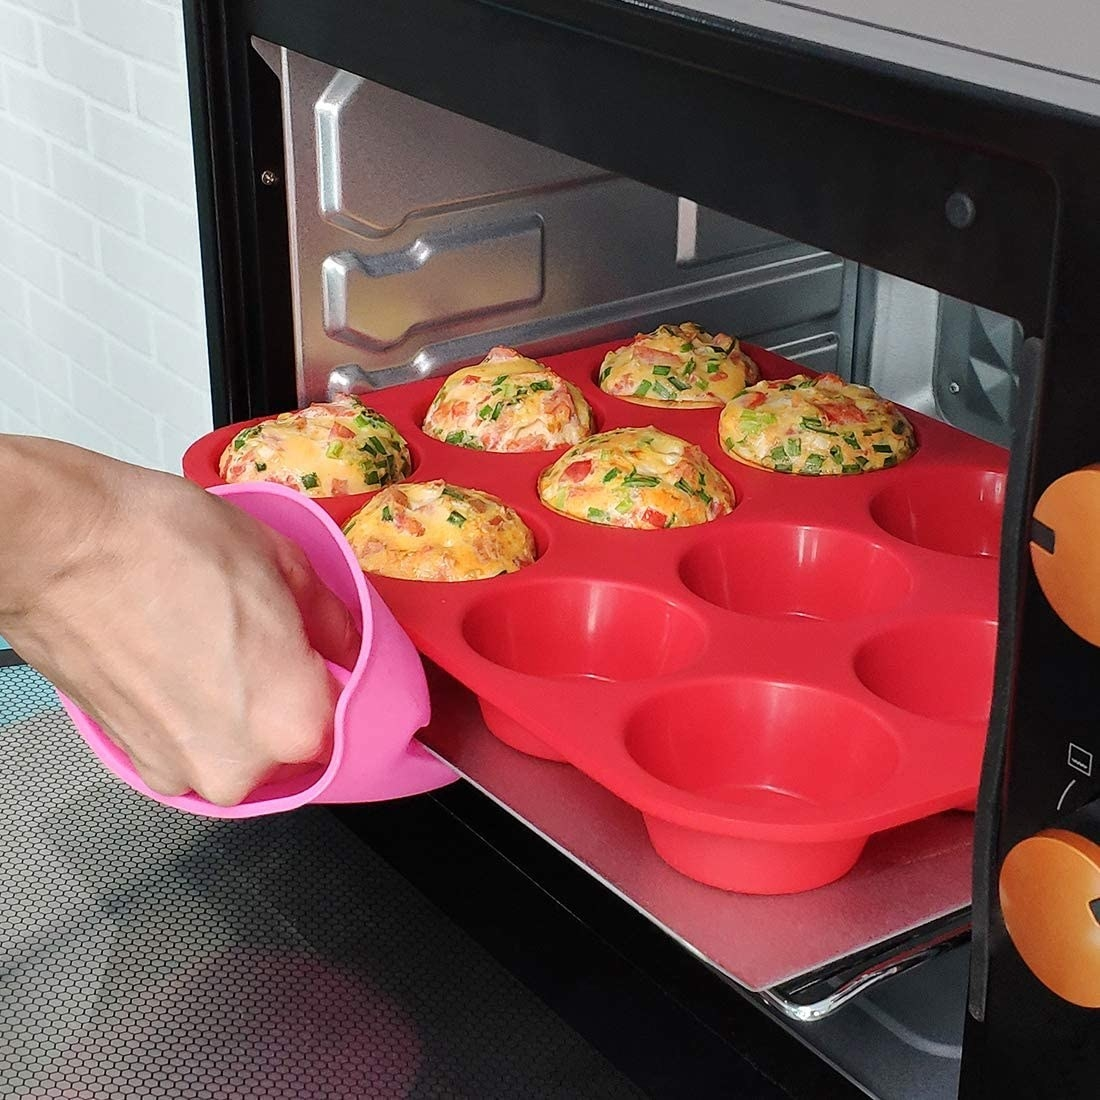 A person taking the silicone pan filled with egg muffins out of a toaster oven